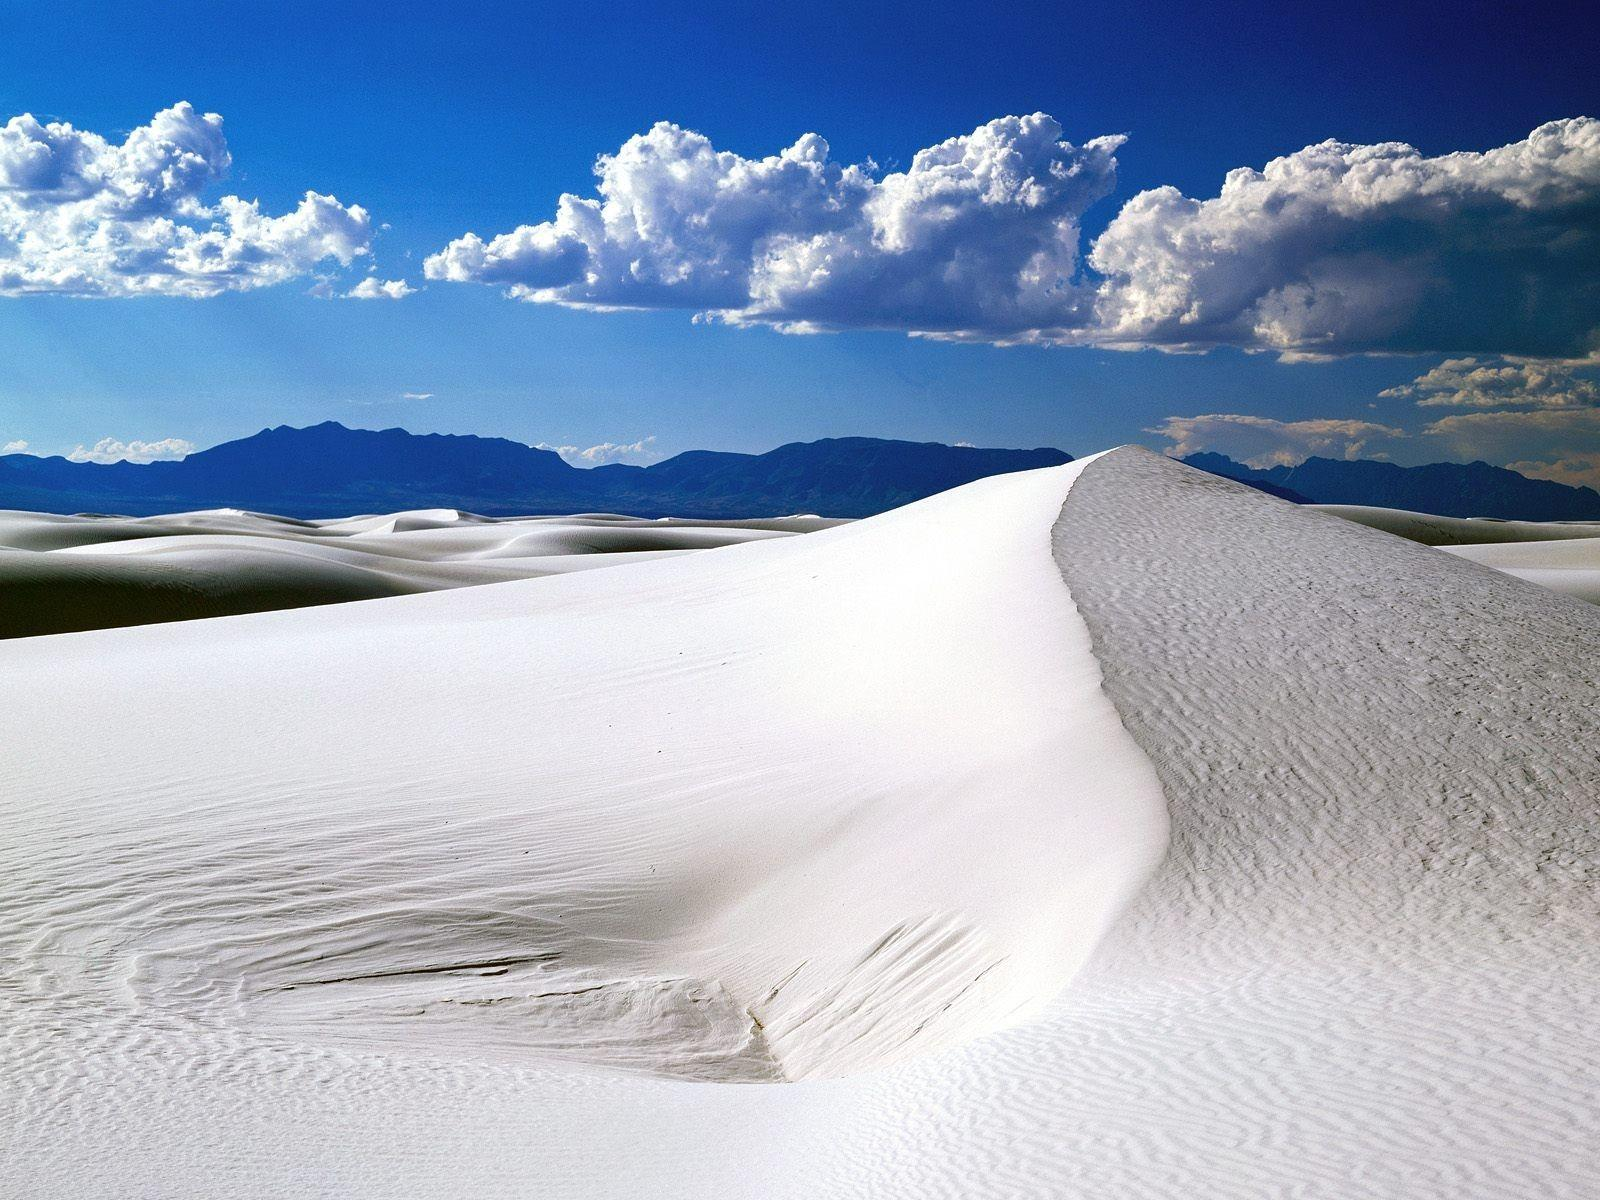 Beach White Sands National Monument New Mexico Landscape Nature